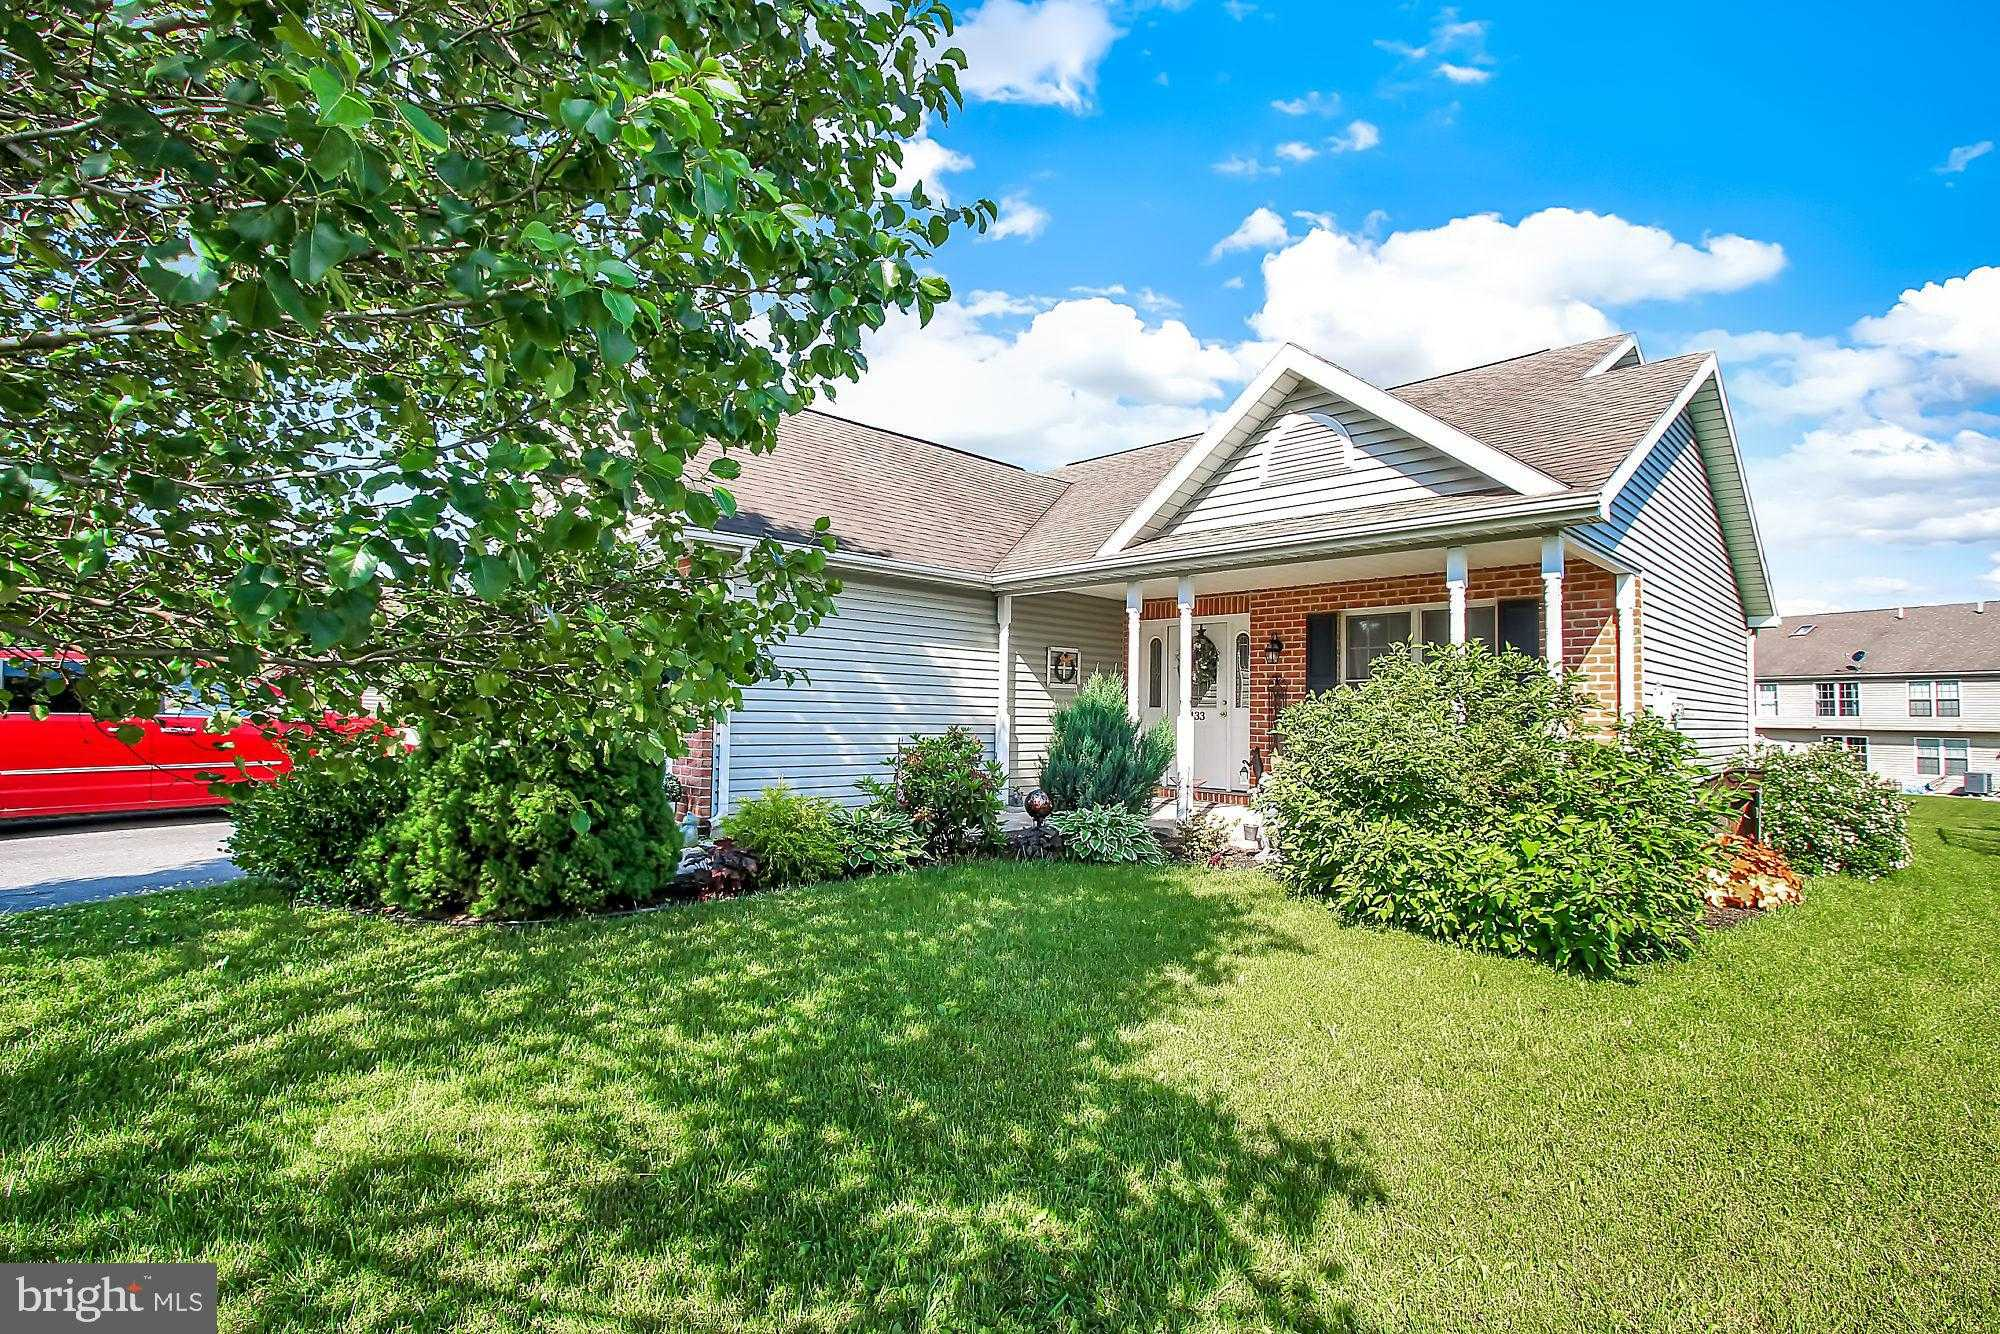 $195,900 - 3Br/2Ba -  for Sale in Enclave, Chambersburg